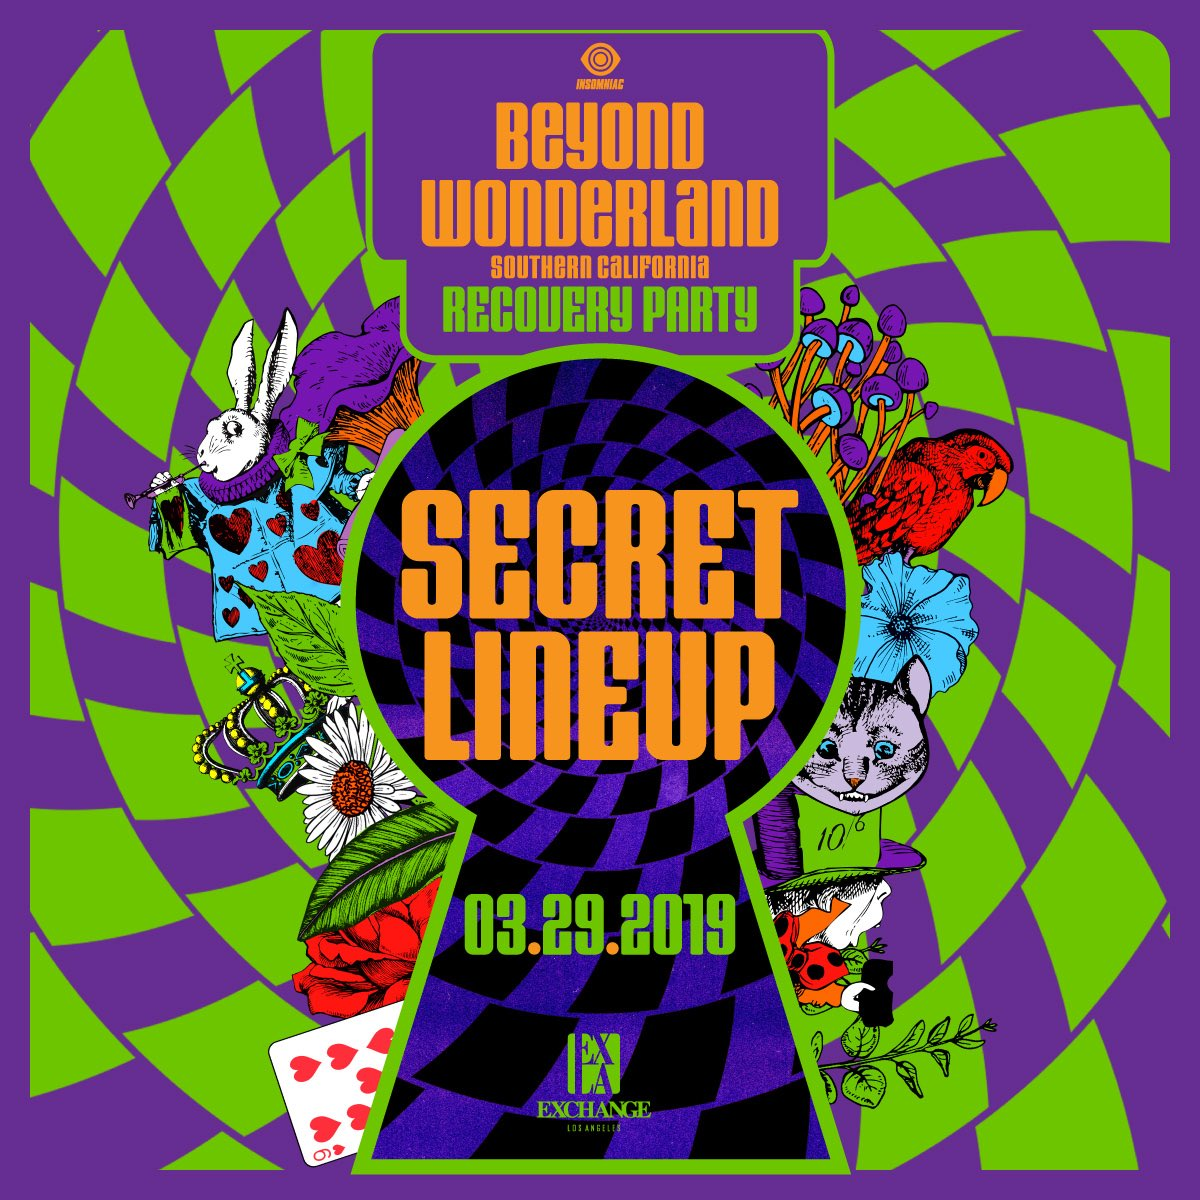 Join us for the Official @BeyondWland Recovery Party ft. Secret Lineup this Friday, 03/29! 🐰🌀🍄  RSVP for Free Entry: http://ExchangeLA.com/032919